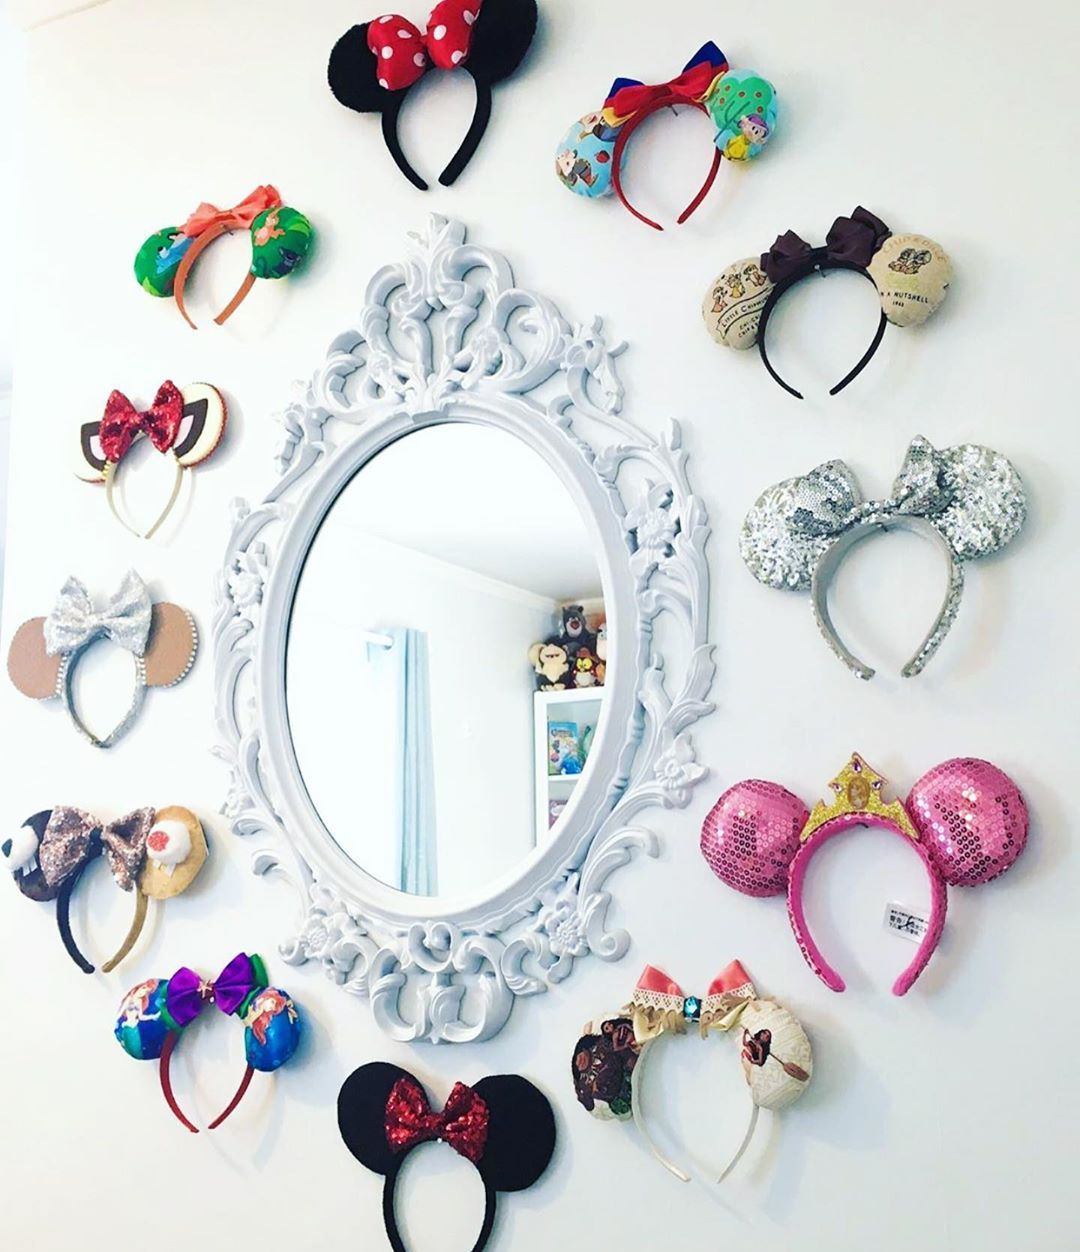 "Disney At Home on Instagram: ""Mirror mirror on the wall.. which pair should I wear? Because I love them all!� Thank you for sharing @joannedoesdisney!️ #mydisneyhome…"""